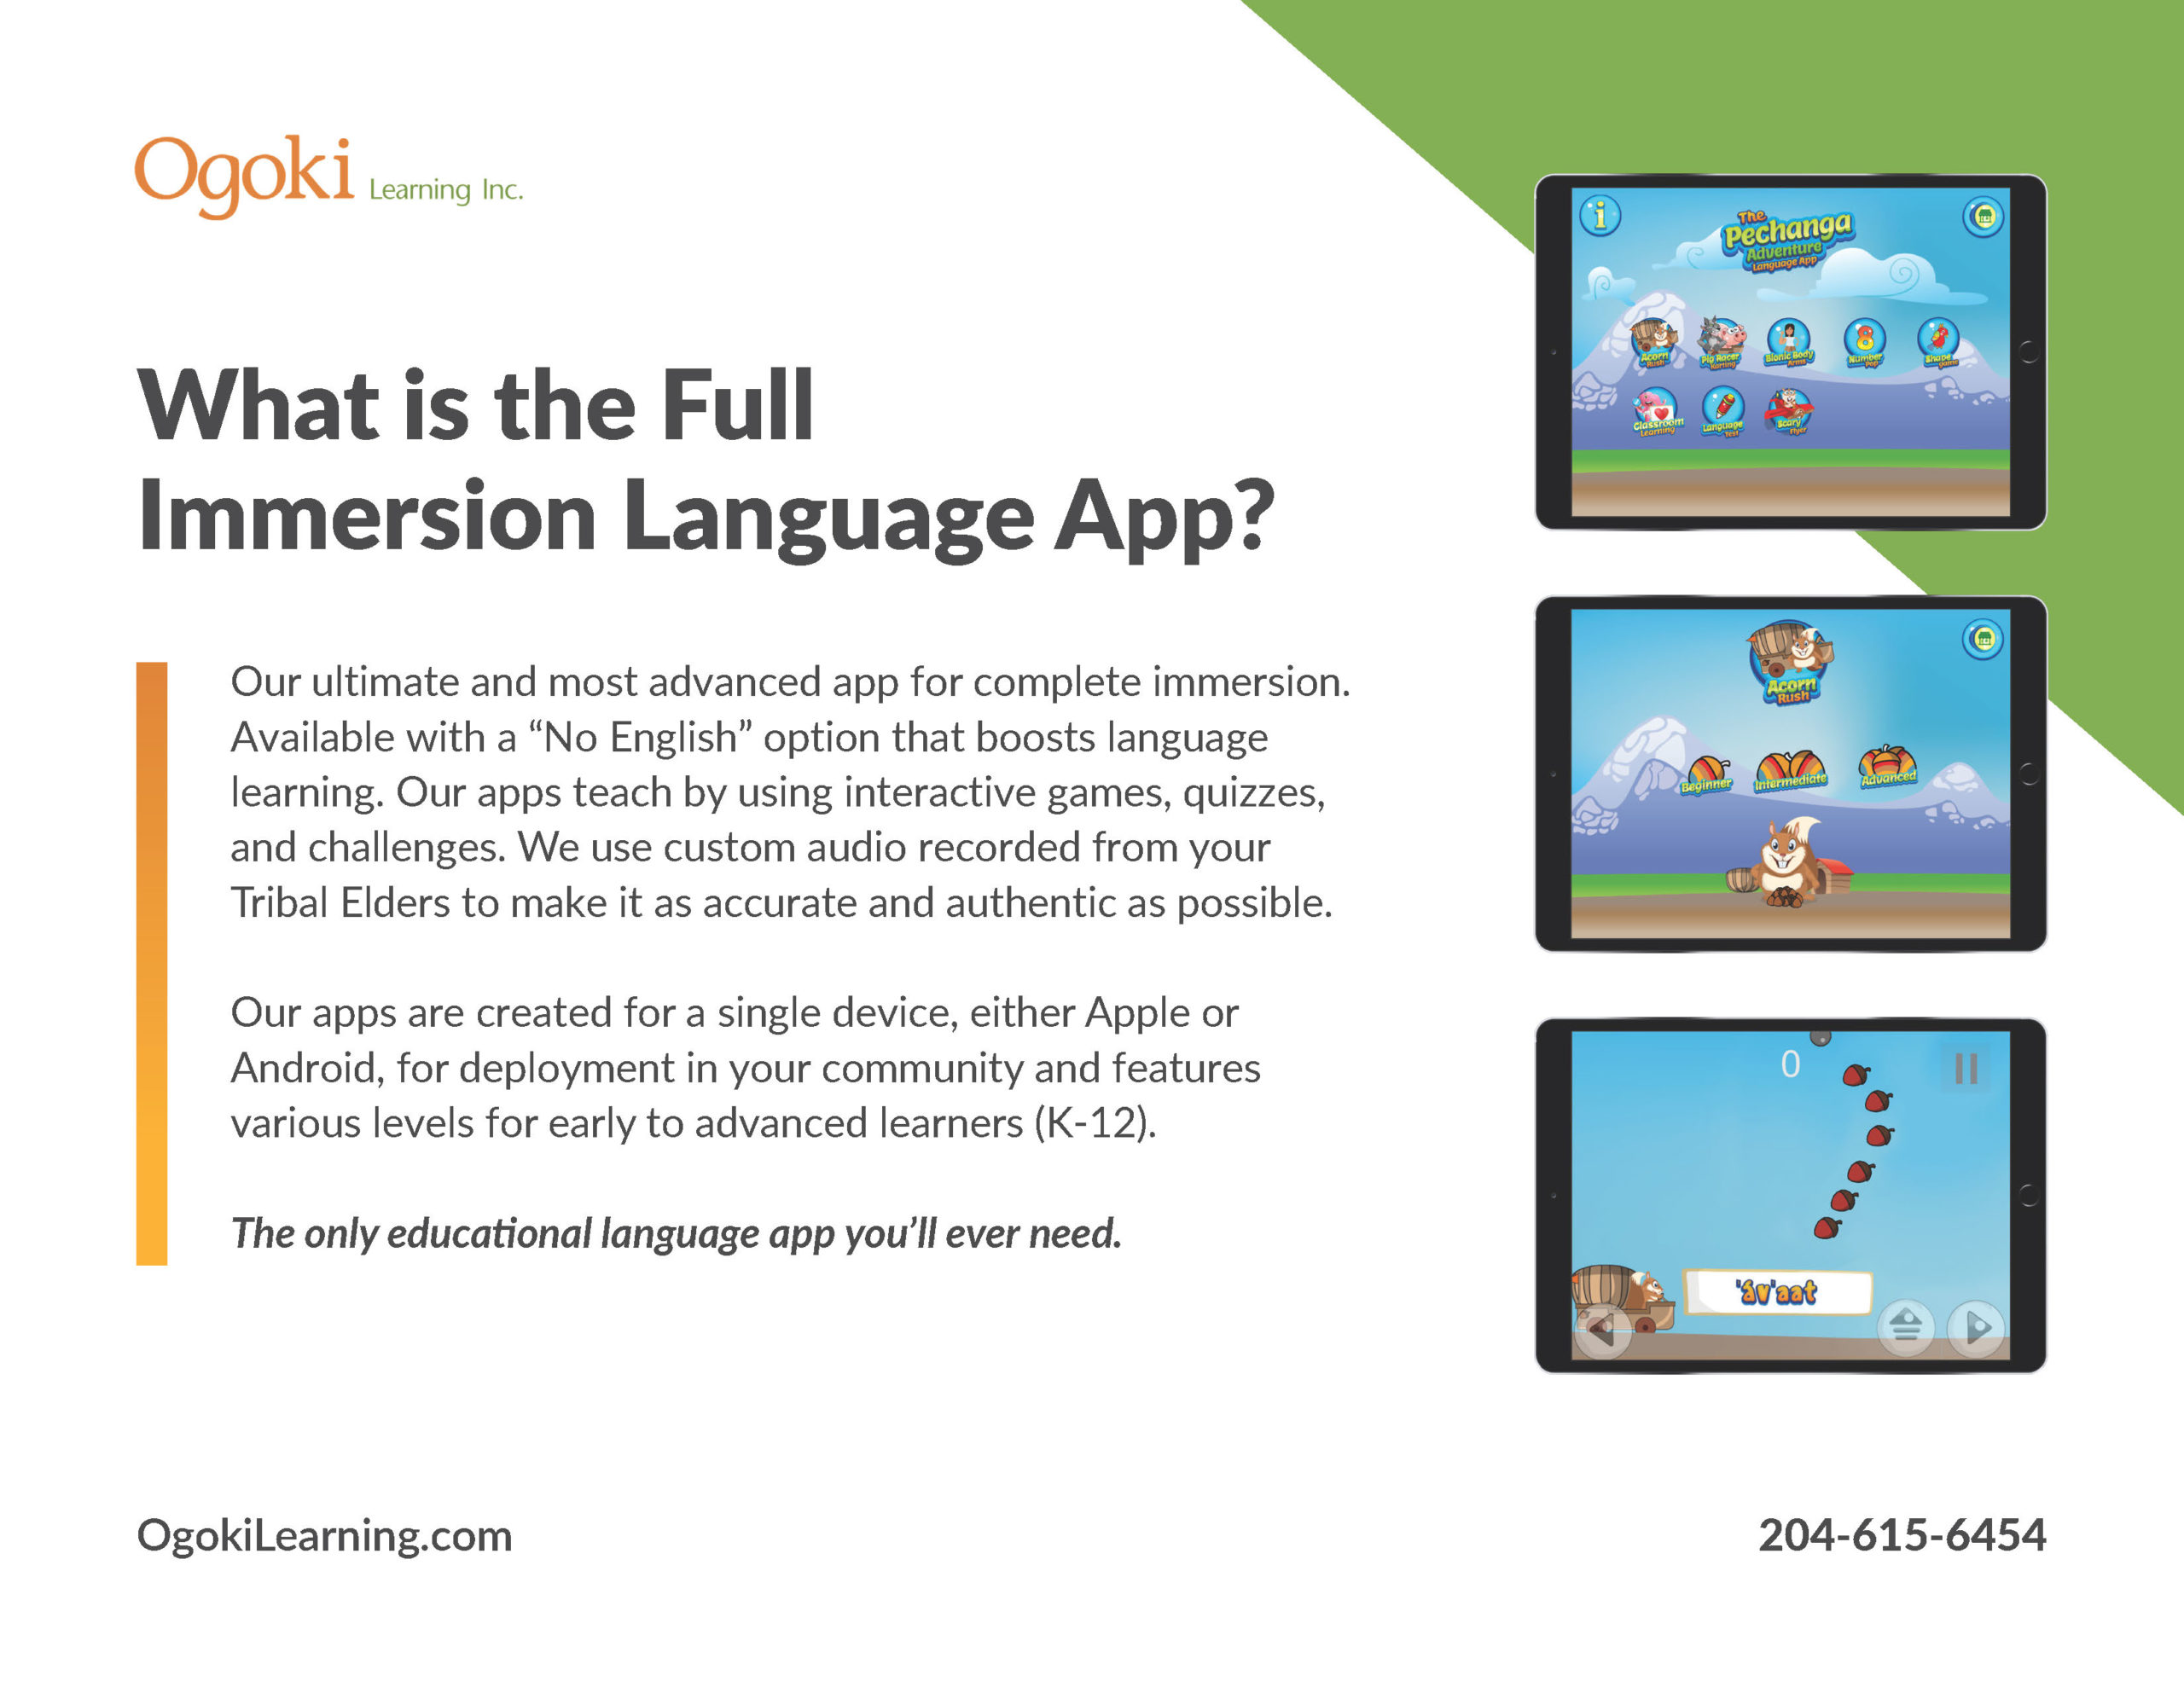 What is the Full Immersion Language App?